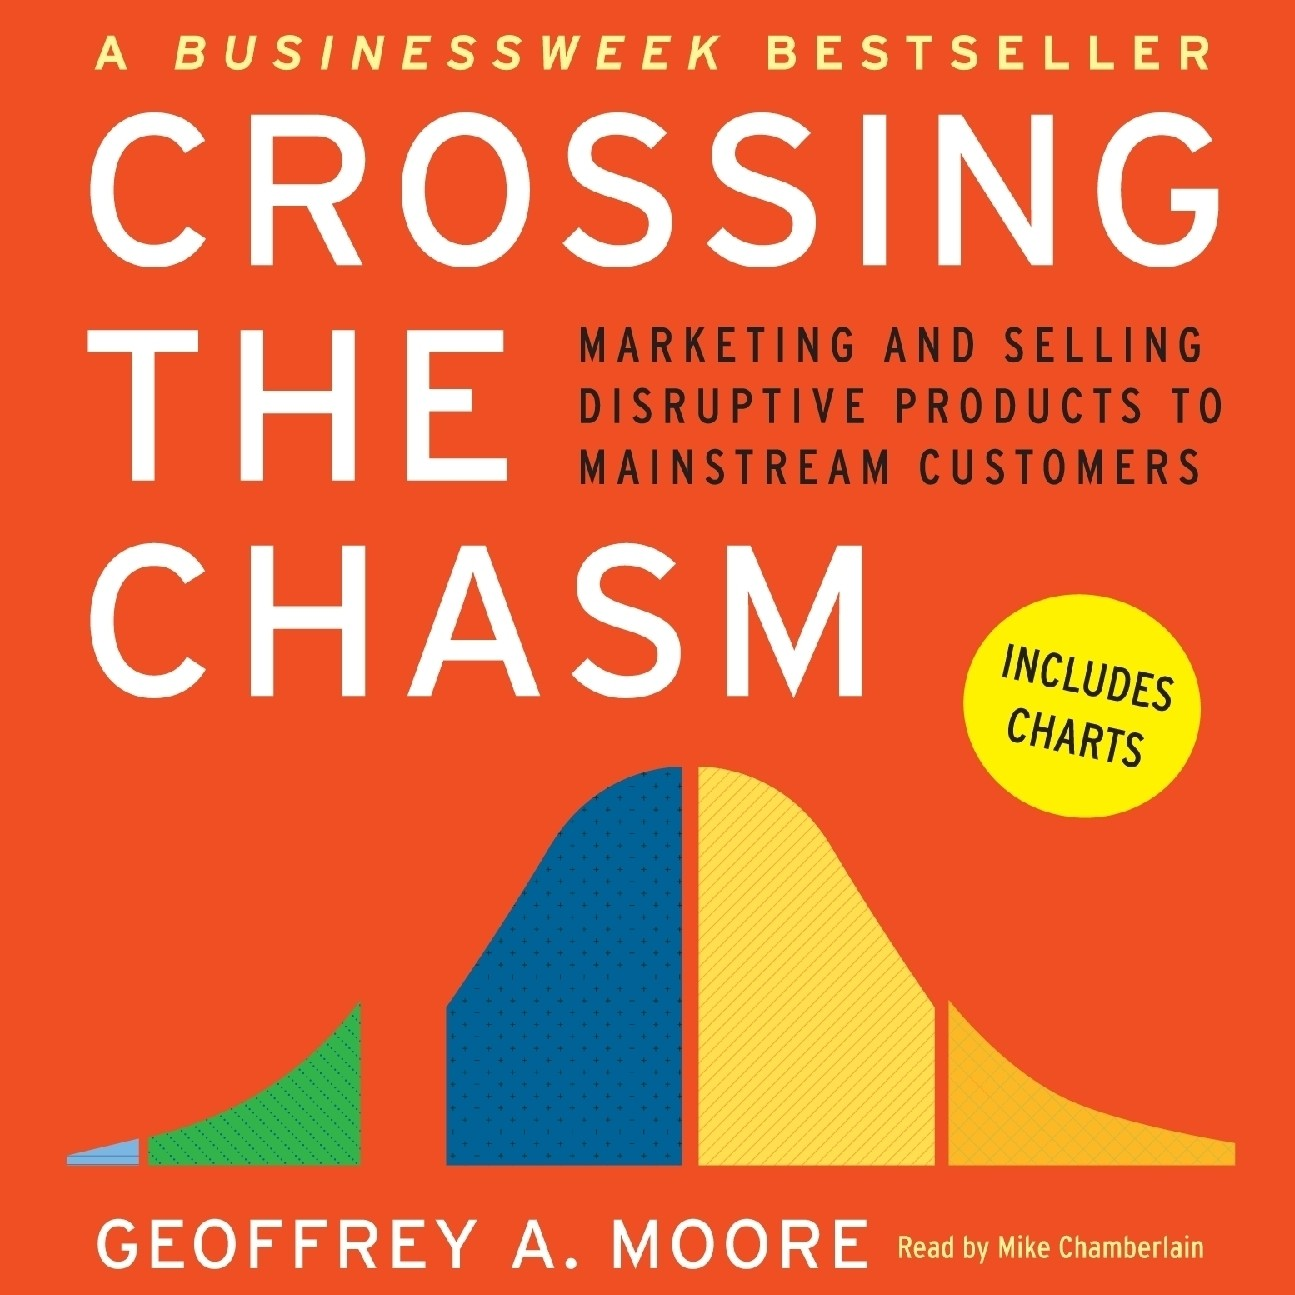 Skipping the Chasm: How a Crisis Accelerates Progress